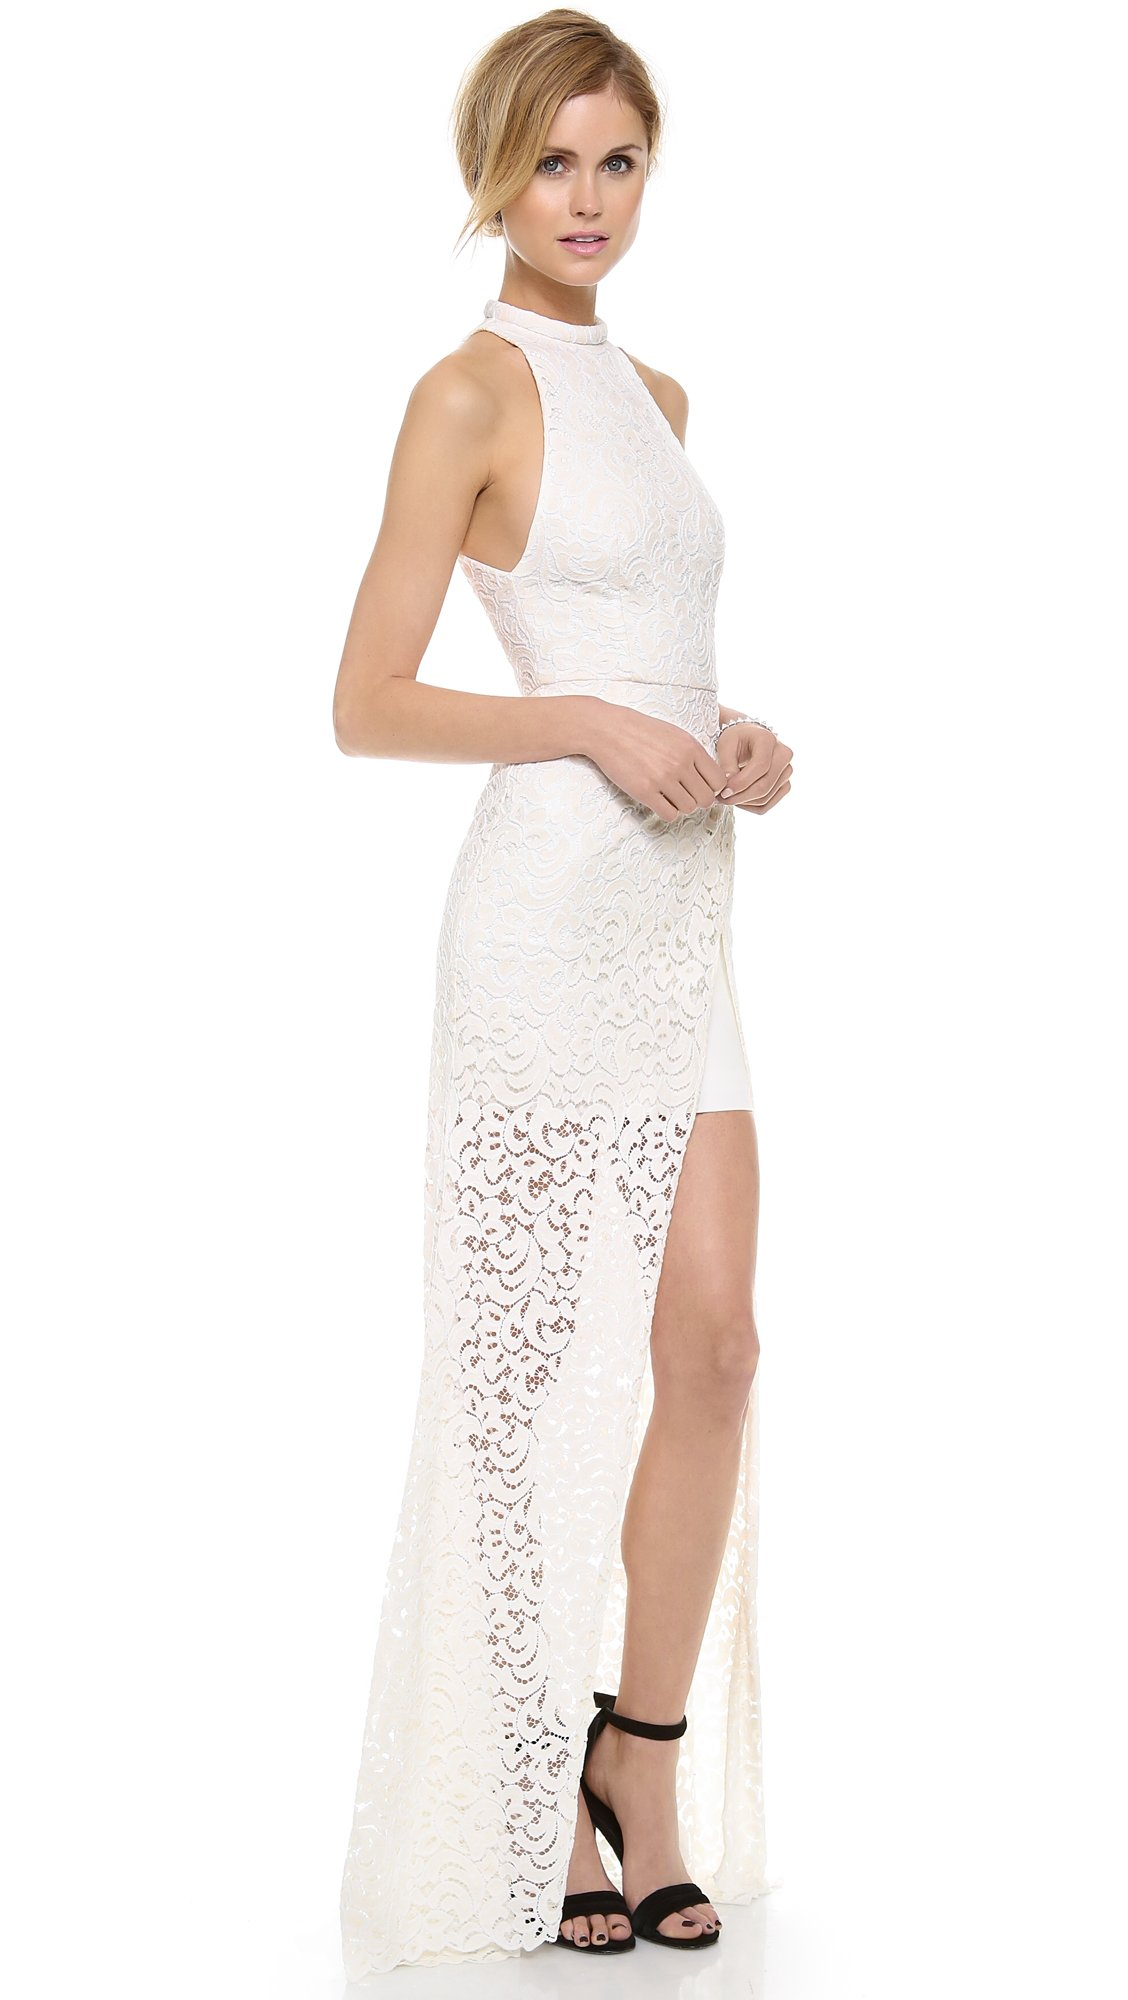 Nicholas Paisley Lace Maxi Dress in Ivory (White)